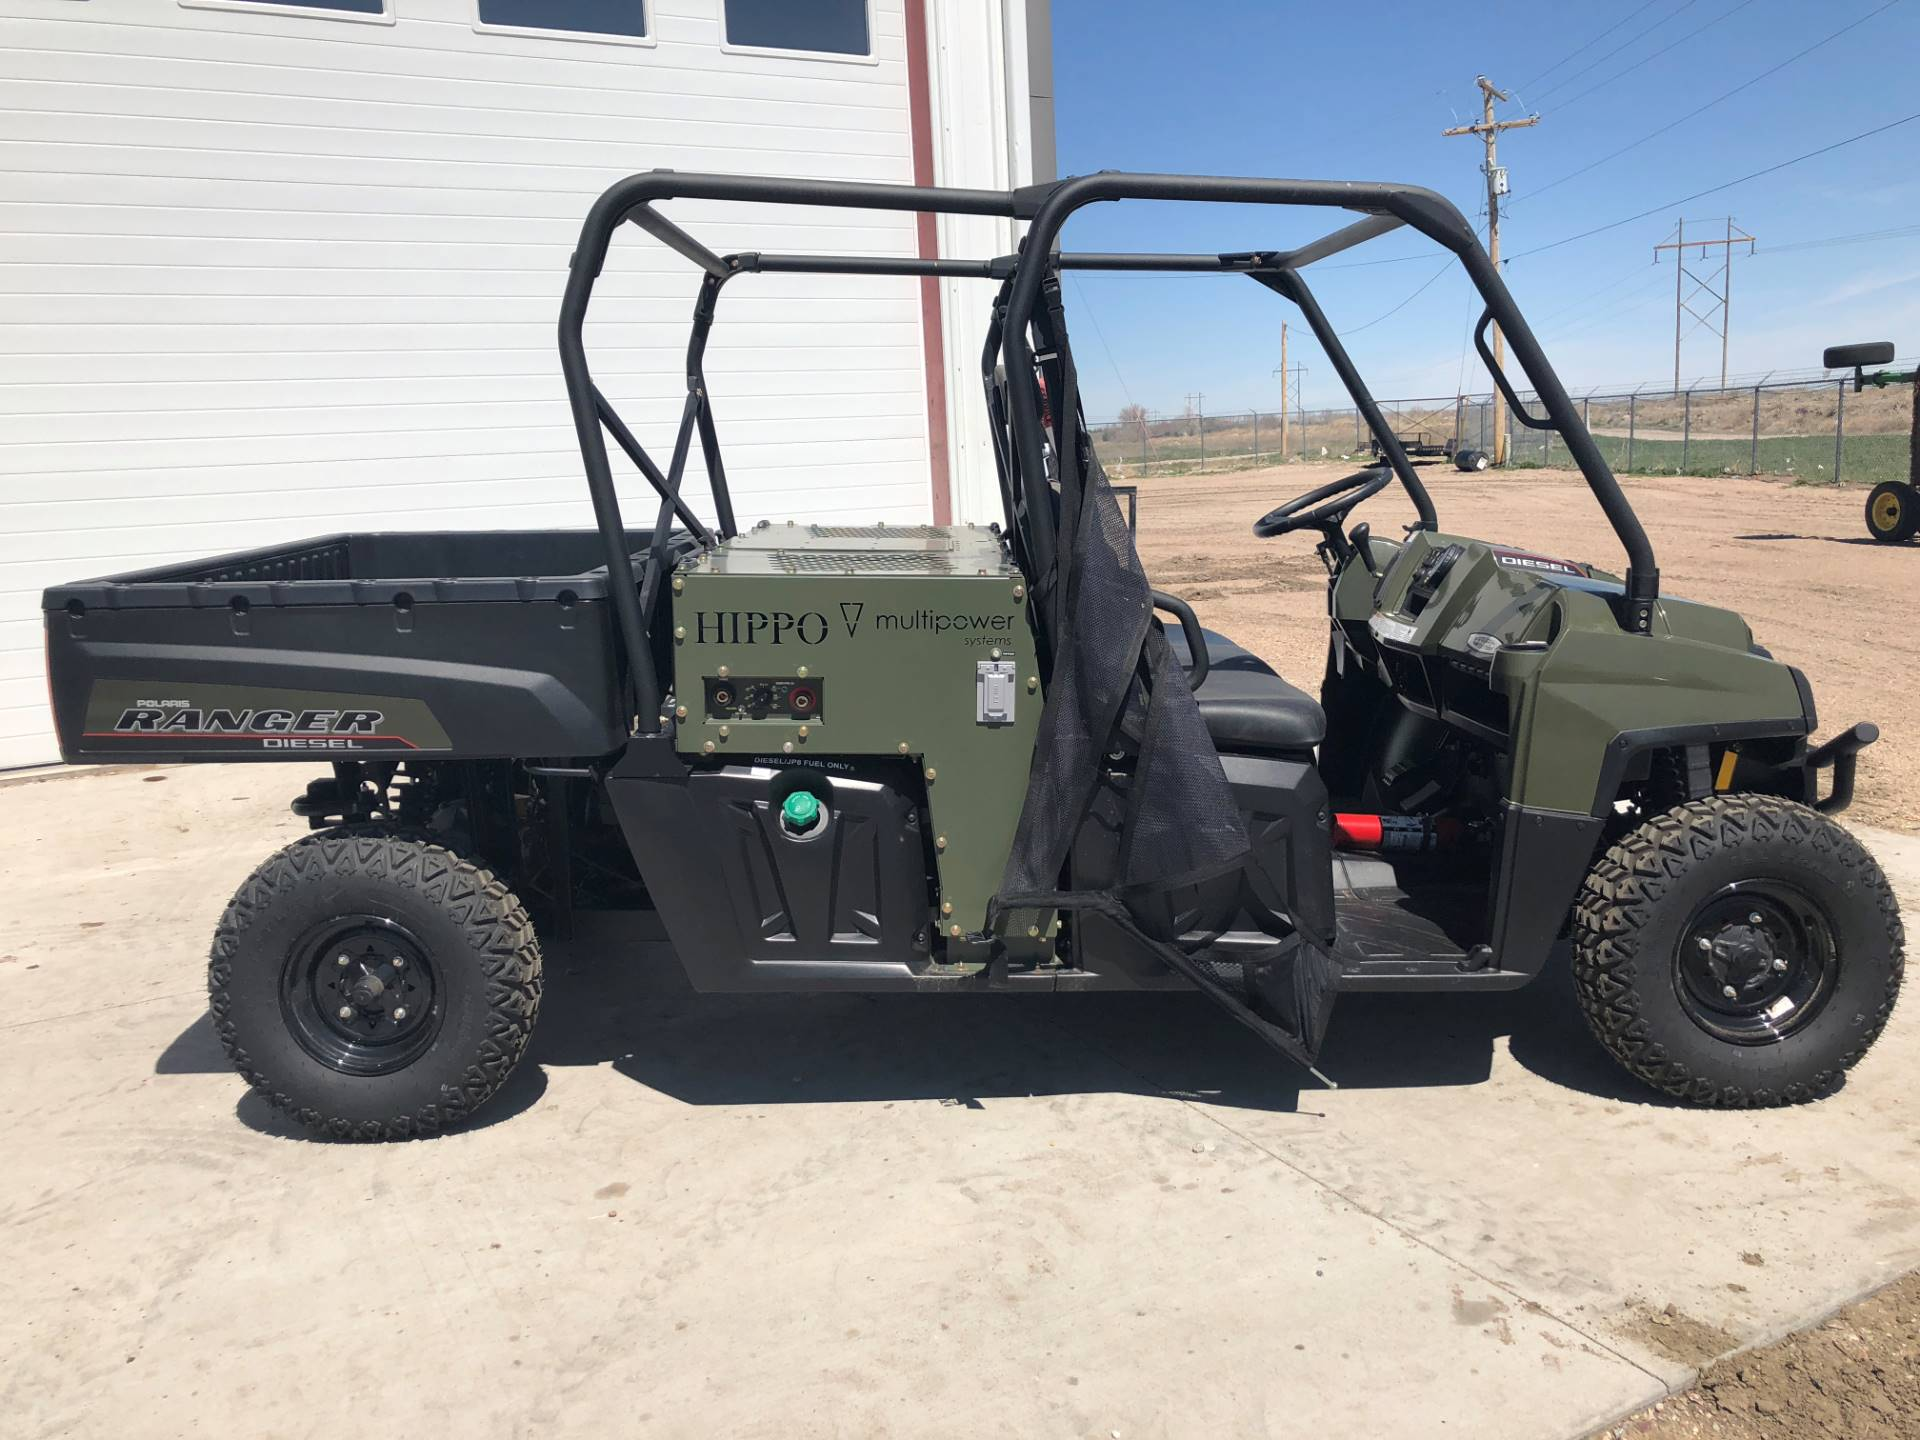 2014 Polaris RGR 14 4X4 900D HIPPO MPS in Scottsbluff, Nebraska - Photo 1